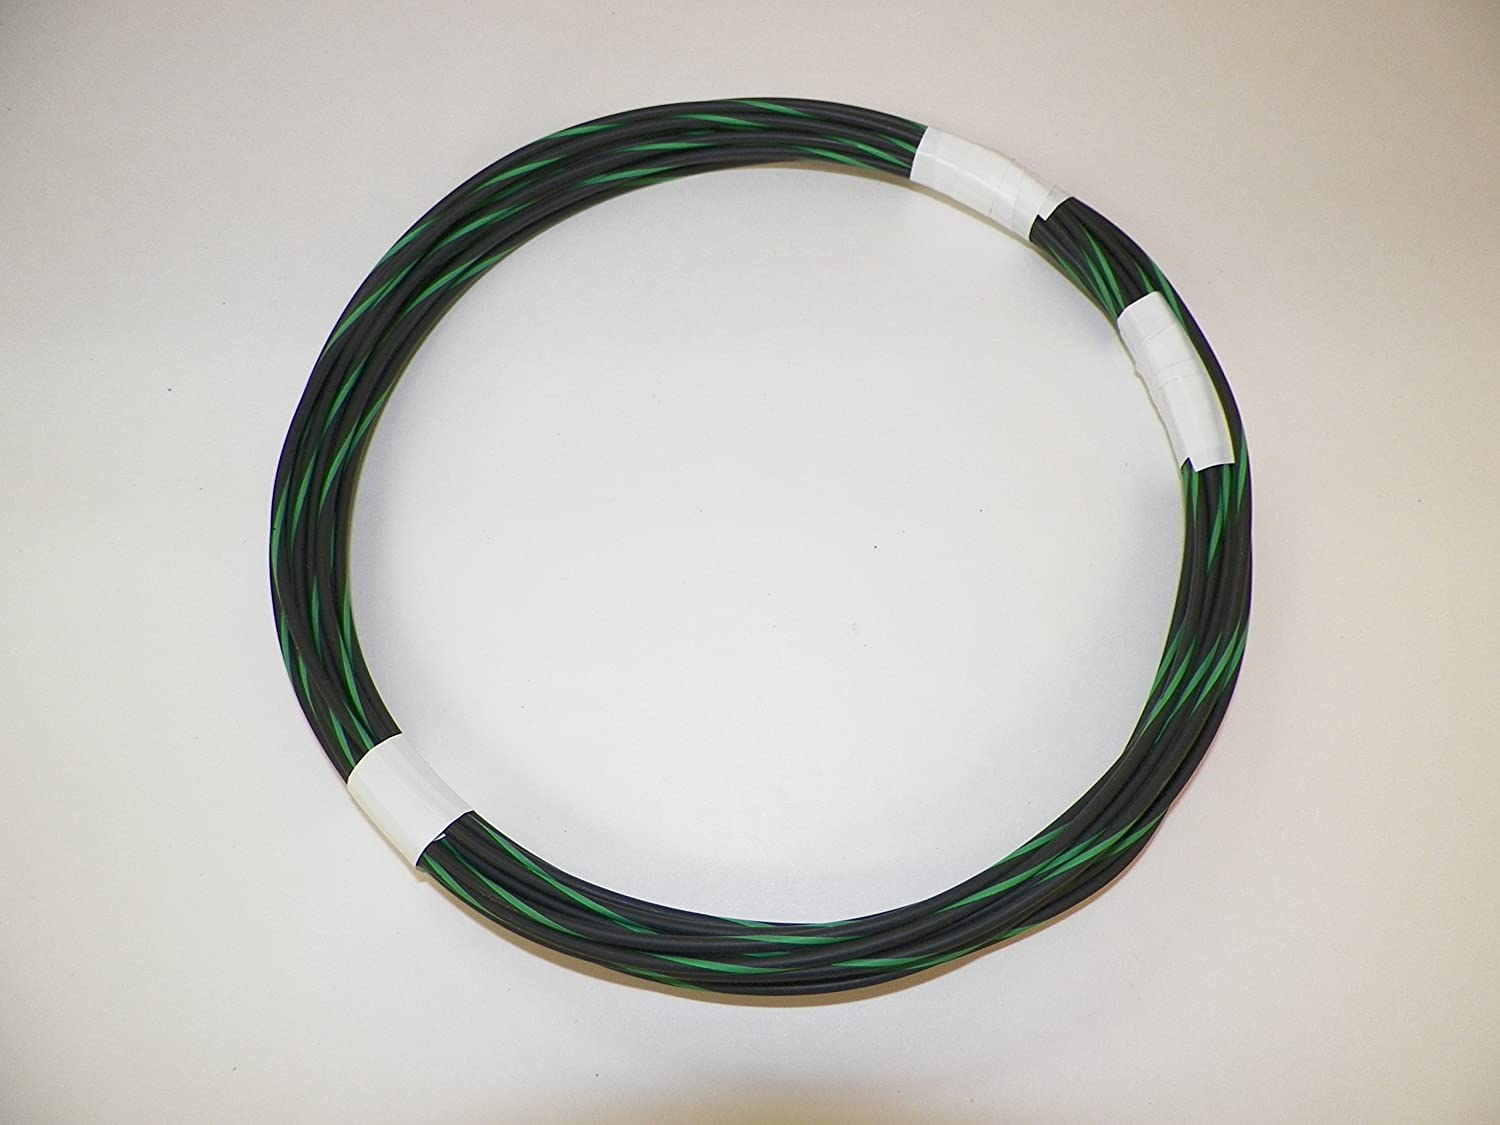 10 STRIPED color wiring options GREEN hi temp automotive 16 gauge GXL wire